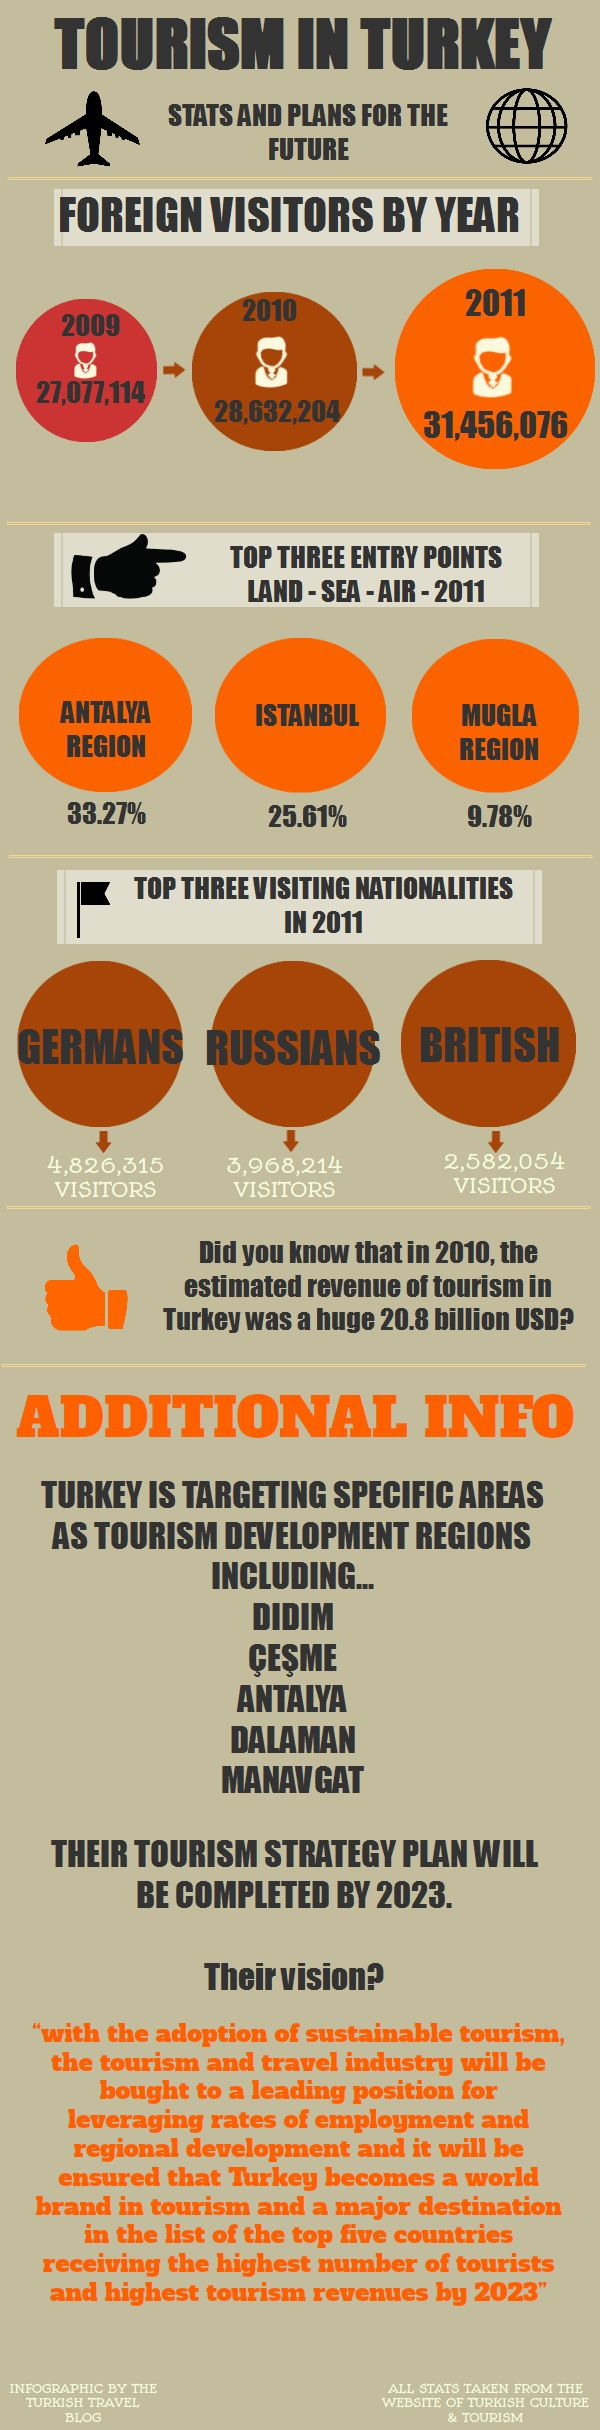 Tourism In Turkey – Stats and Plans For The Future – Infographic